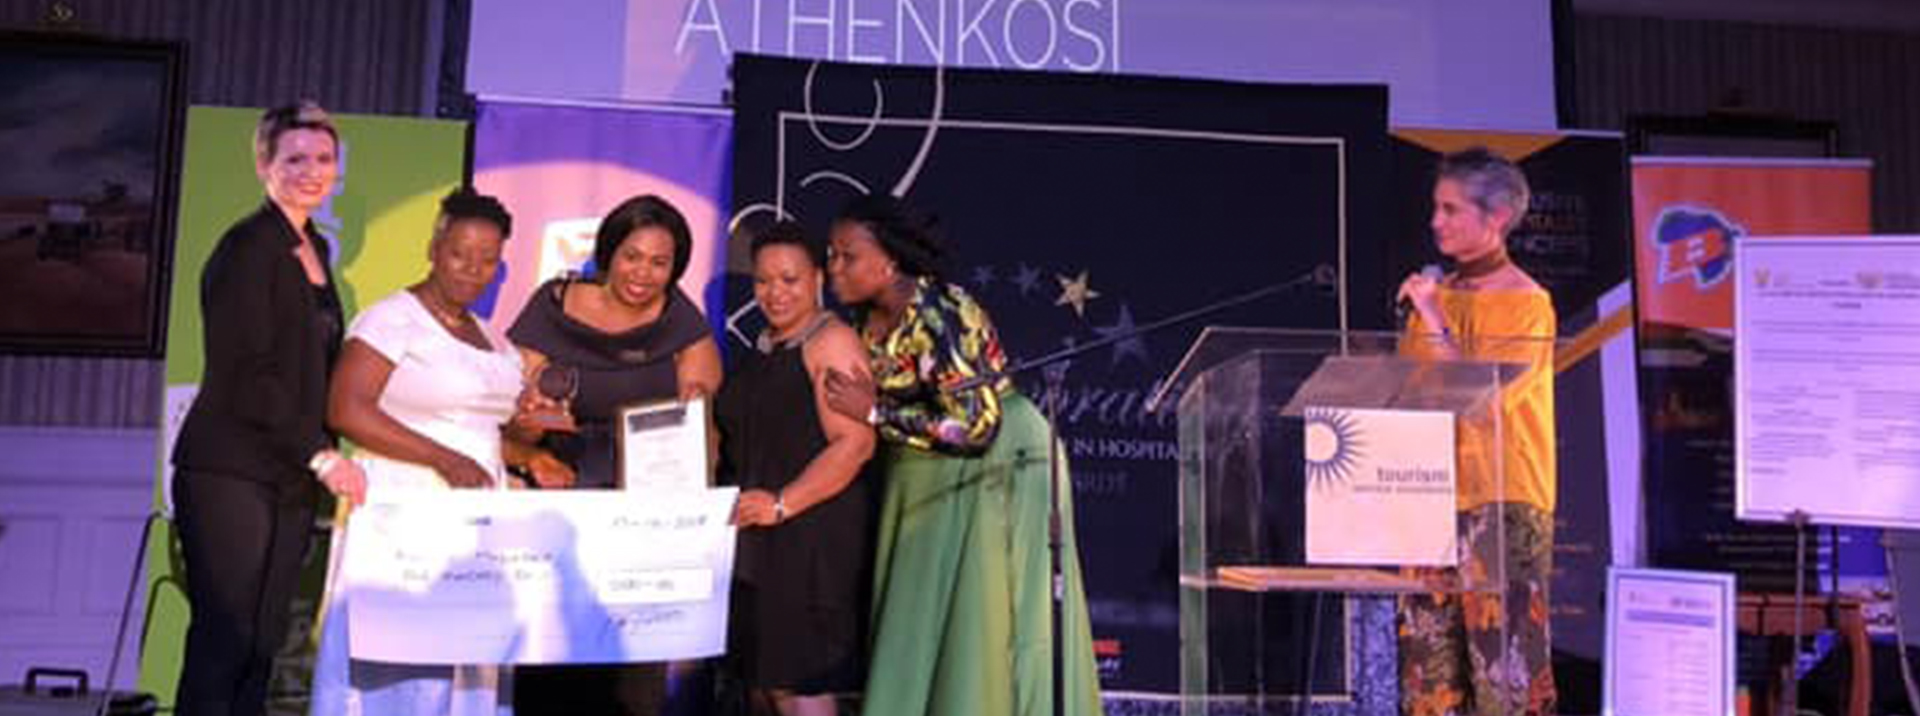 Athenkosi wins F&B service award at Exclusive Hospitality Concepts